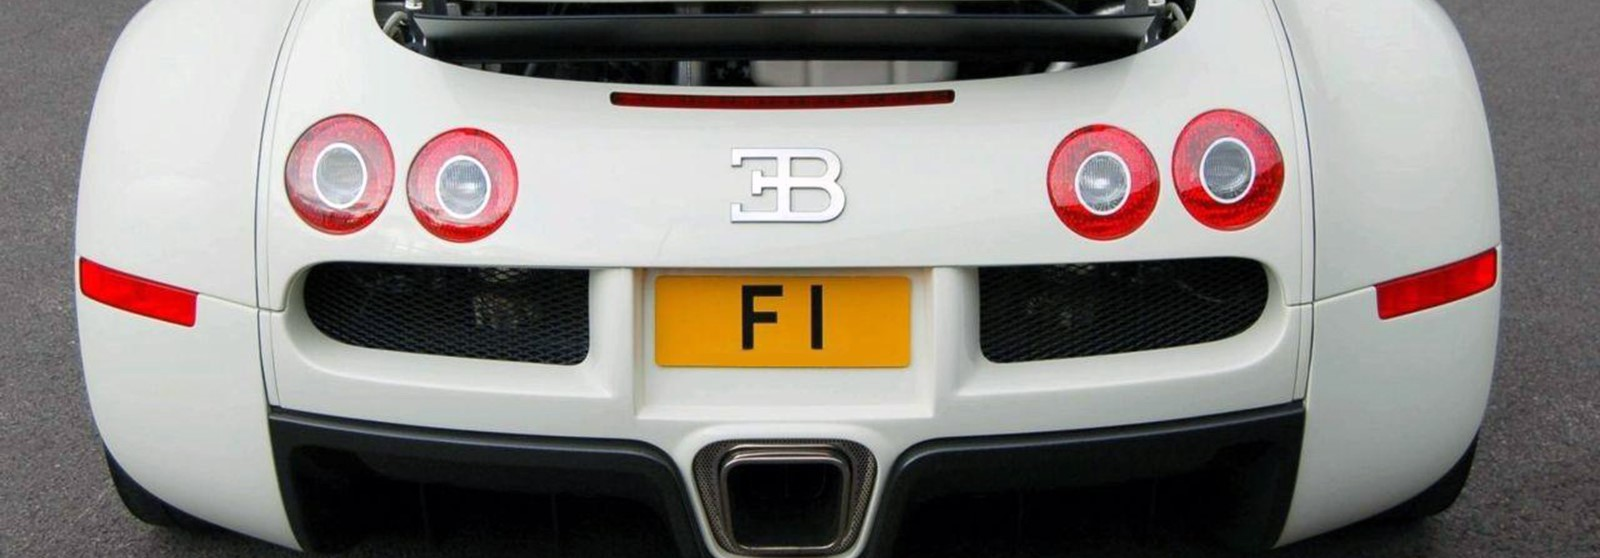 Are Gel Number Plates Legal?